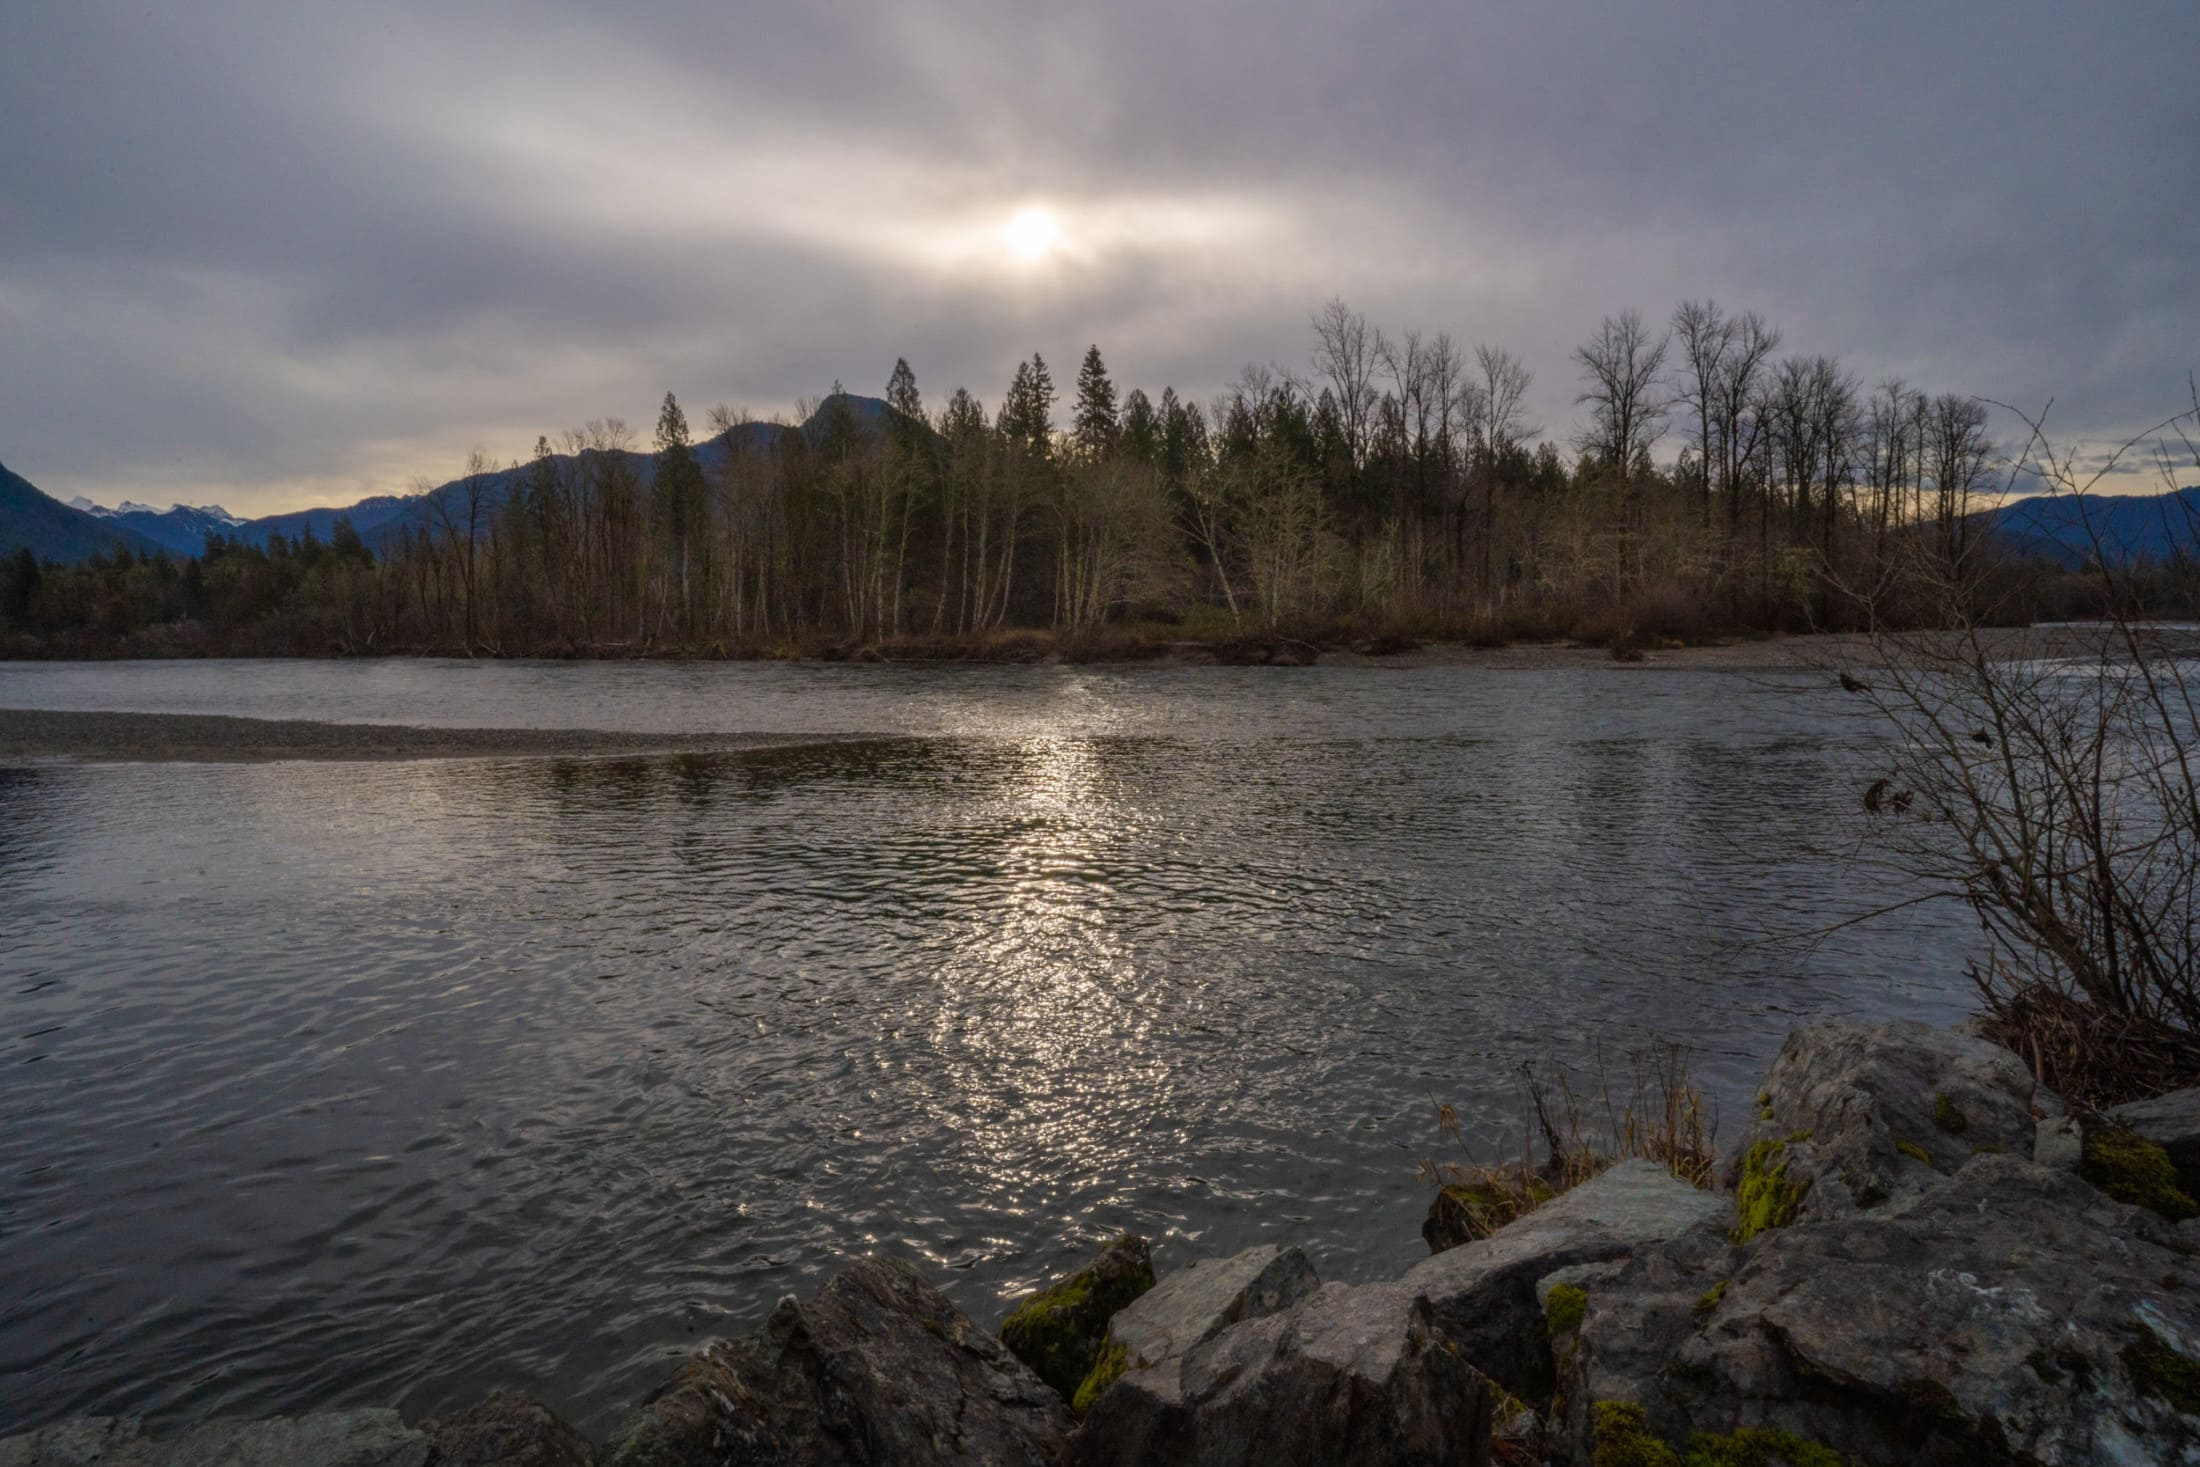 Skagit River outside of Concrete, Washington